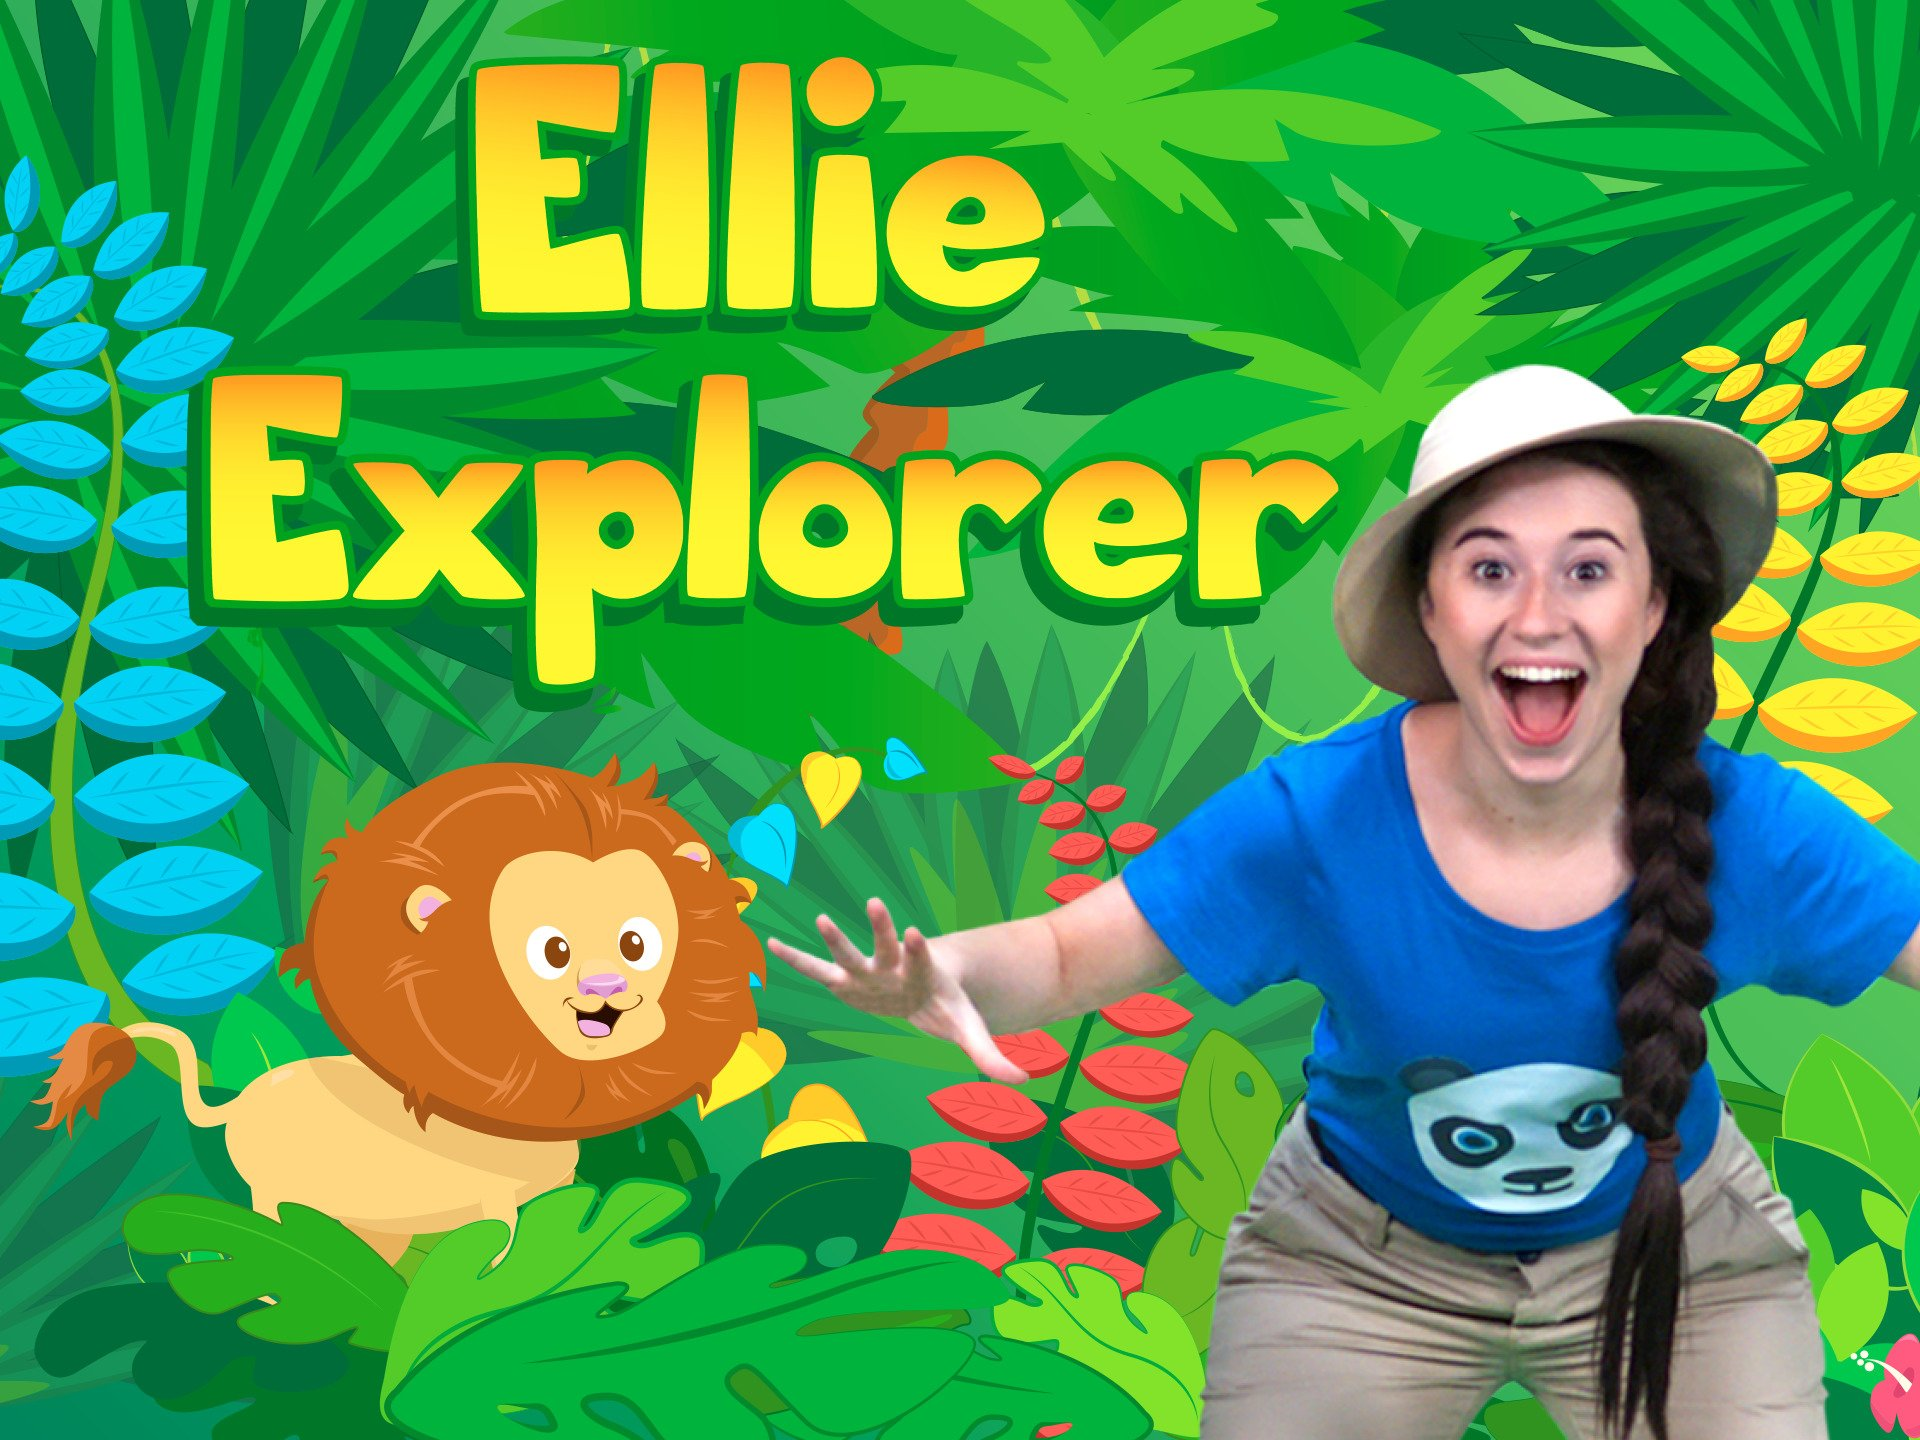 Ellie Explorer - Season 1